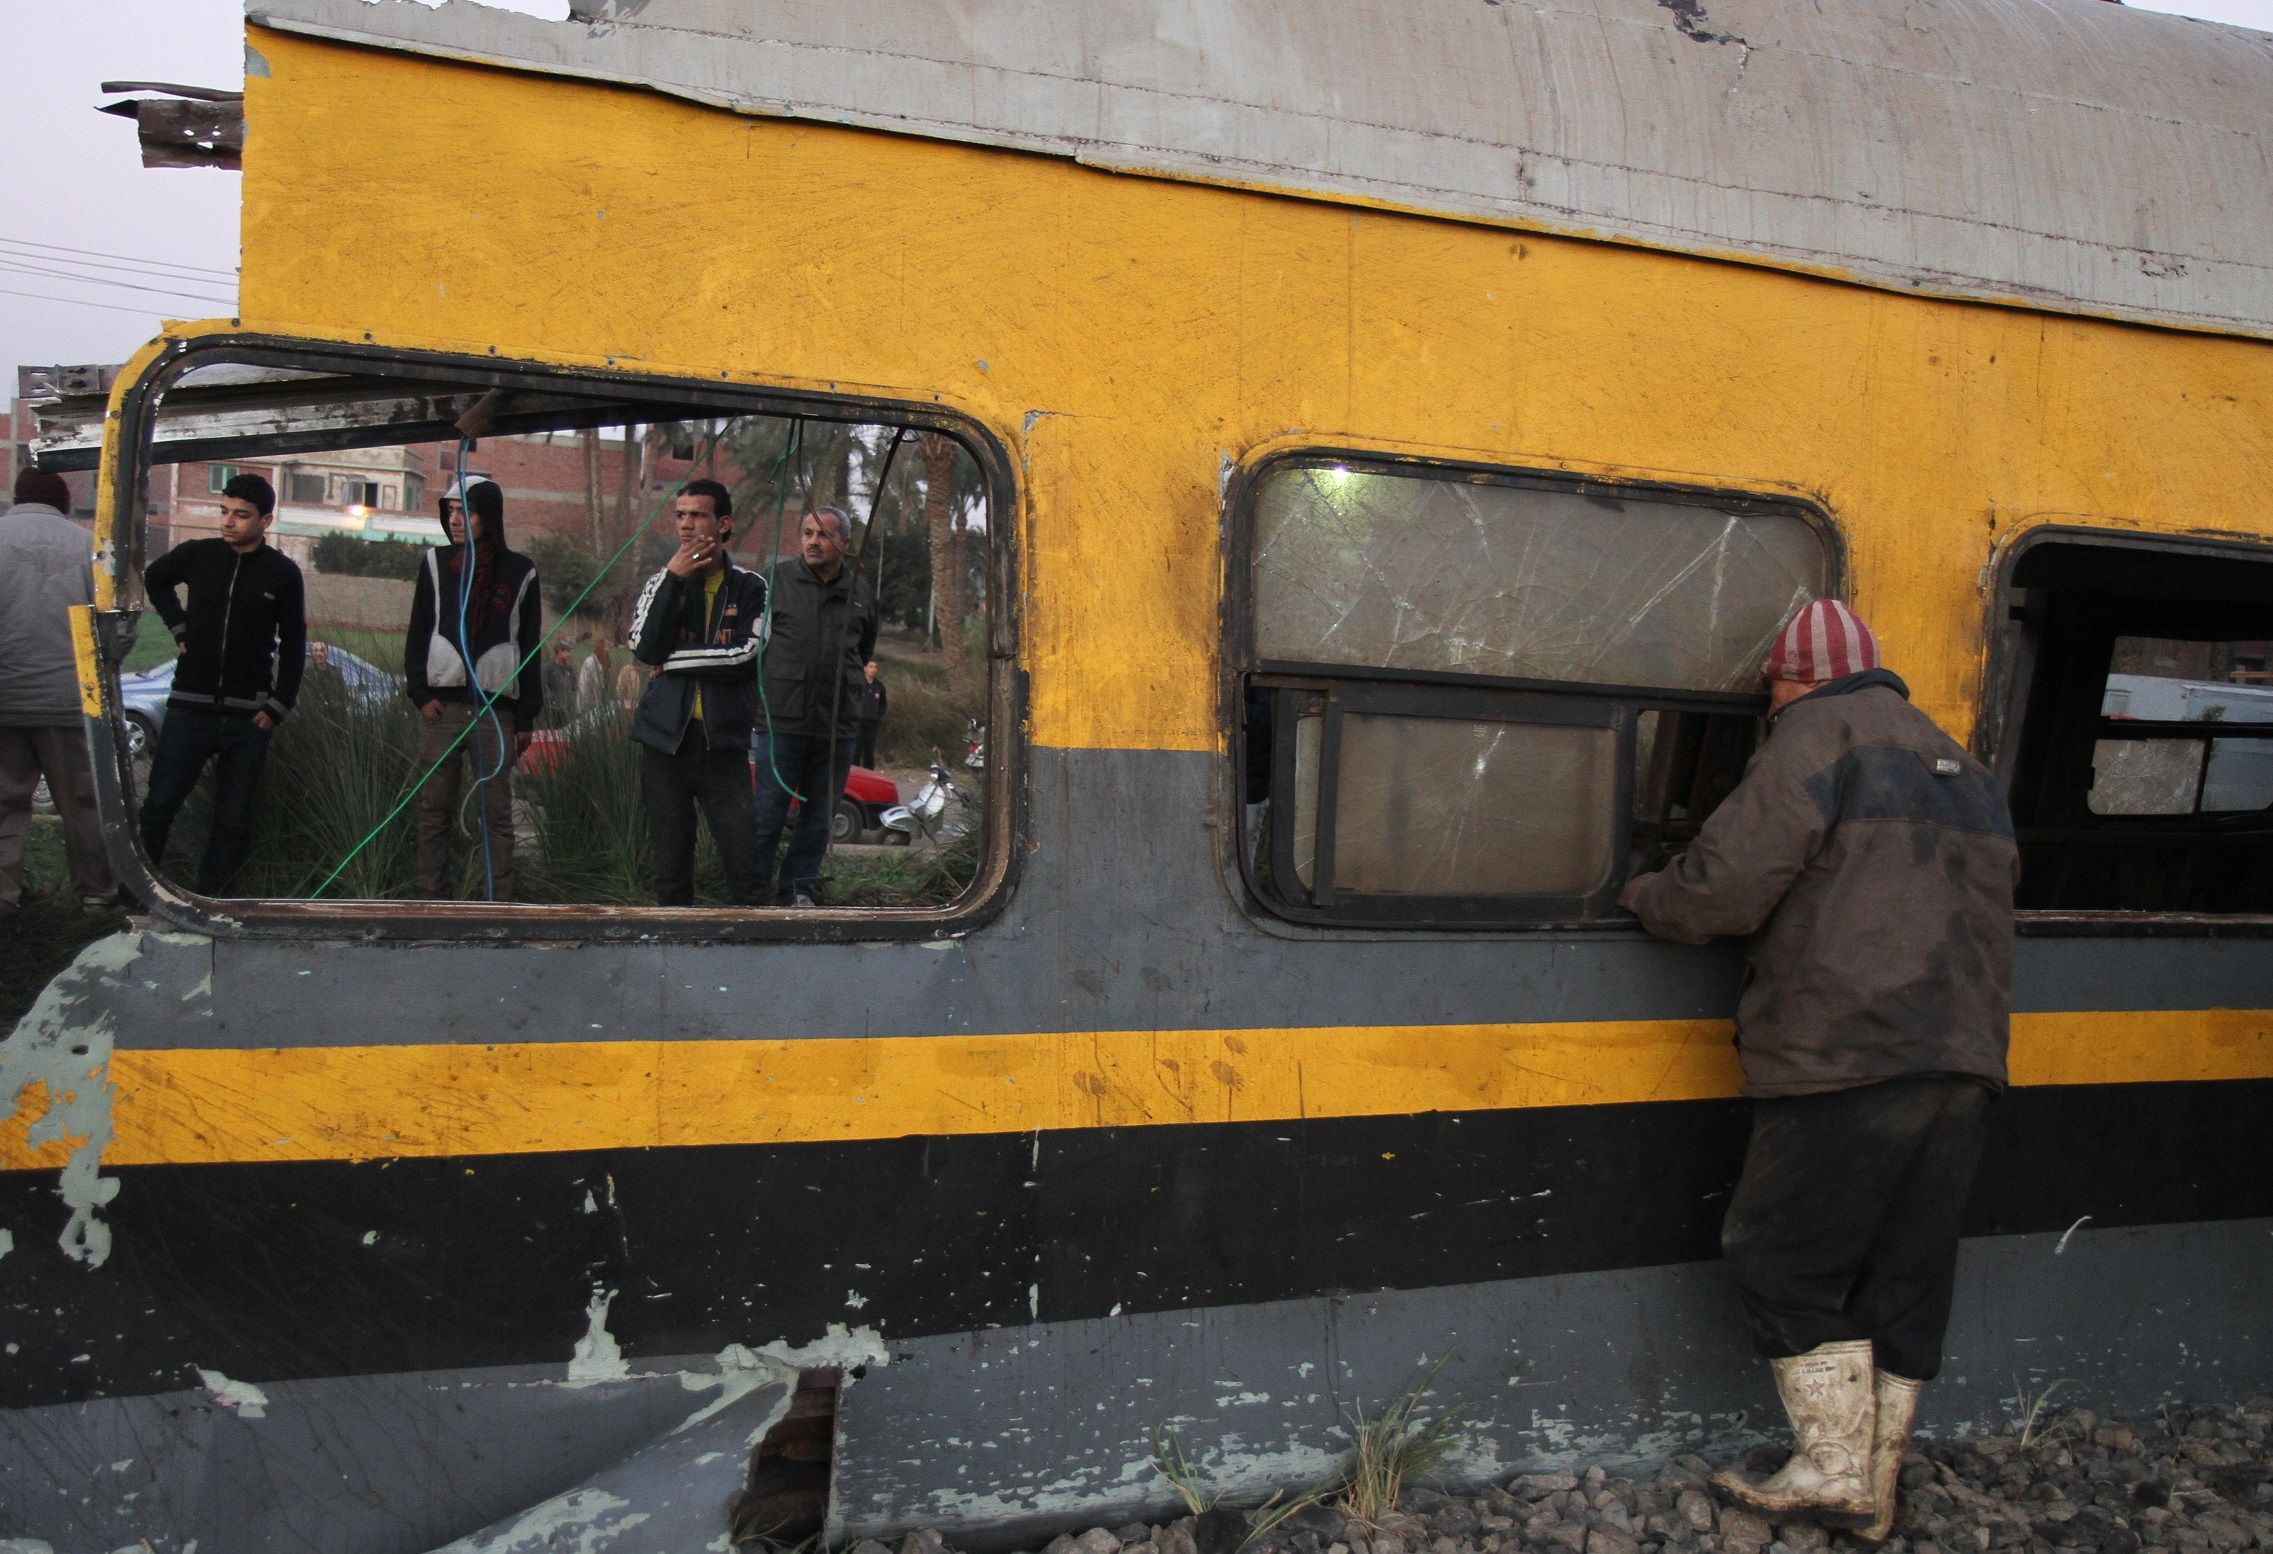 At Least 31 Dead, Scores Hurt as Trains Collide in Alexandria, Egypt